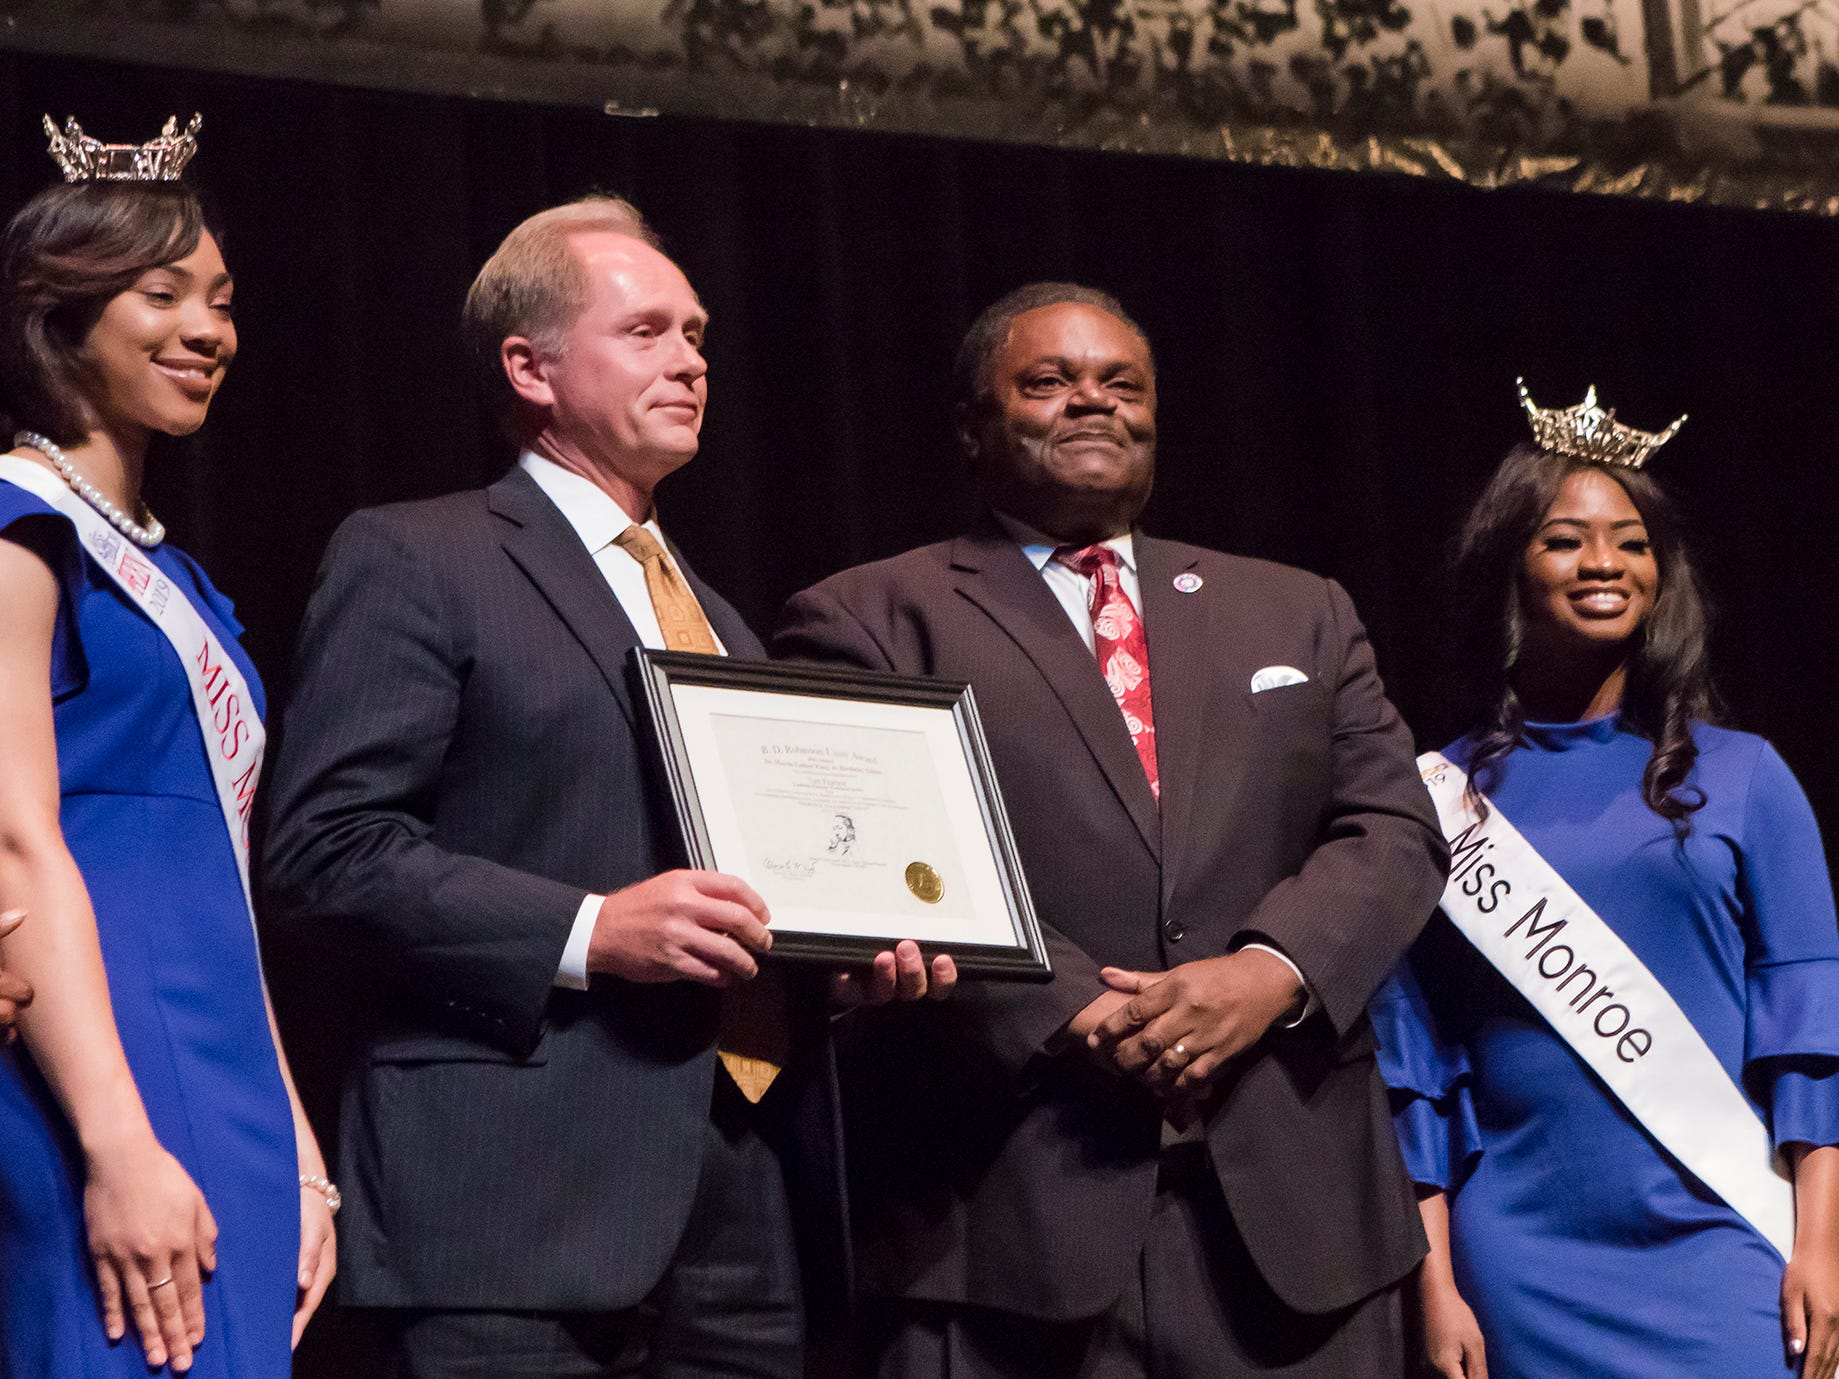 Tom Pearson was recognized with the B.D. Robinson Unity Award. It was presented by City Council Vice-Chair Juanita Woods, Miss Monroe's Outstanding Teen Heaven Britton, Mayor Jamie Mayo, Miss Monroe Grace Powell and City Councilman Michael Echols.